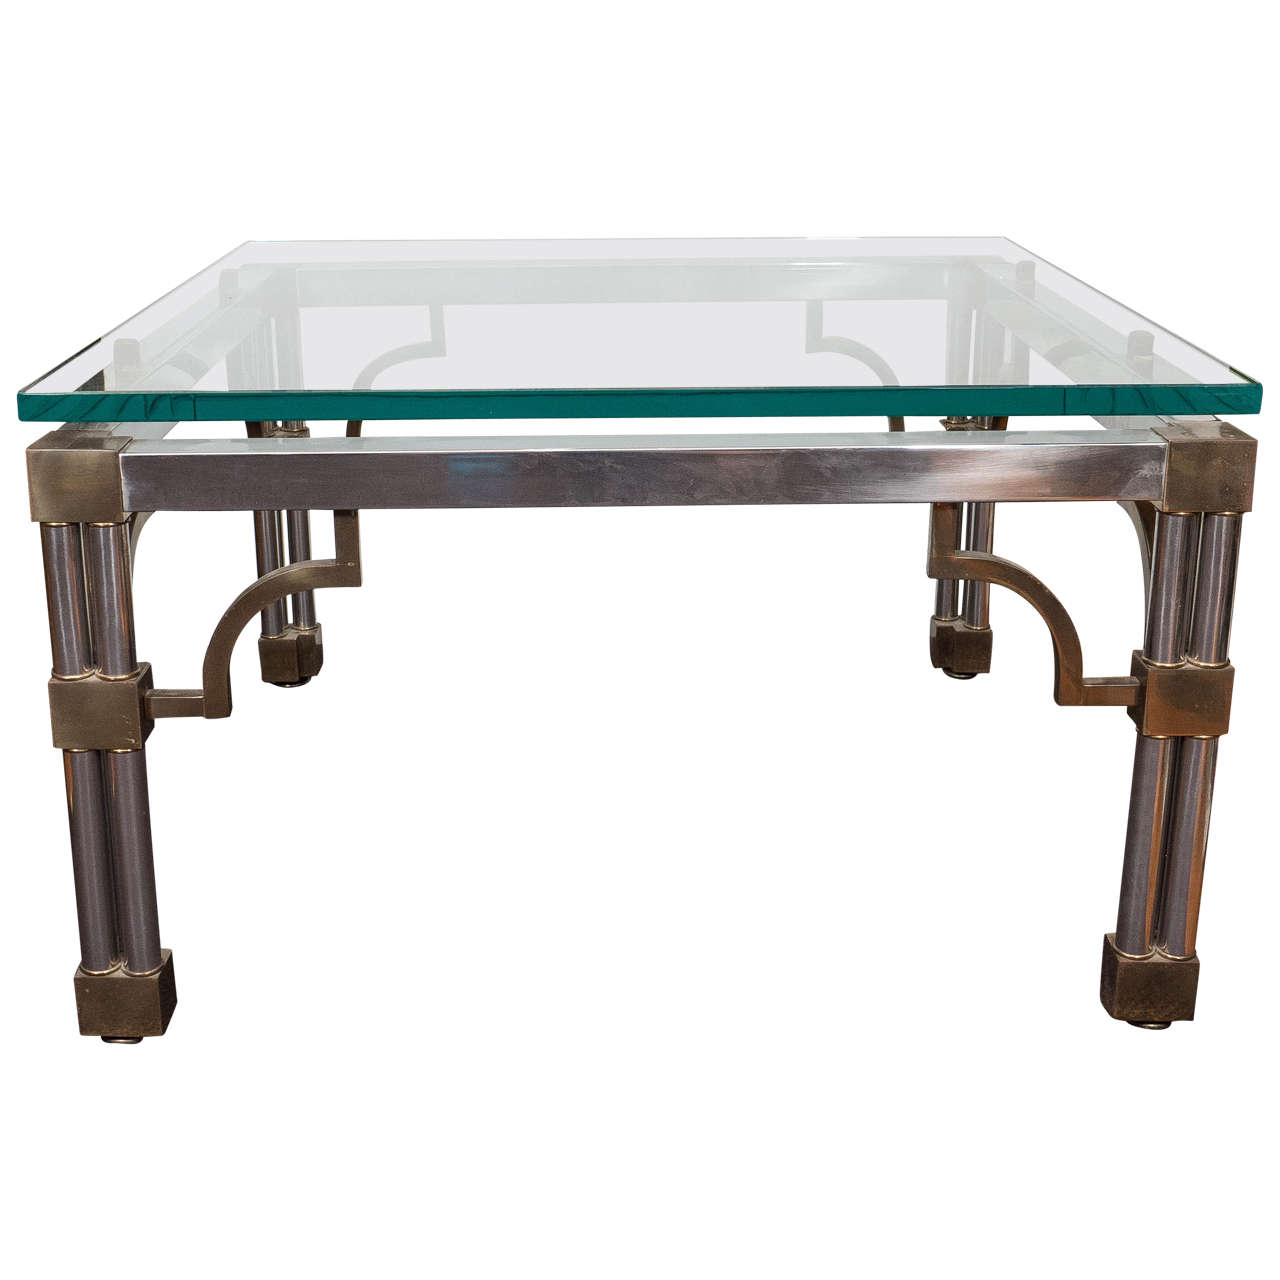 Asian Inspired Glass Top Chrome Coffee Table with Brass Detail